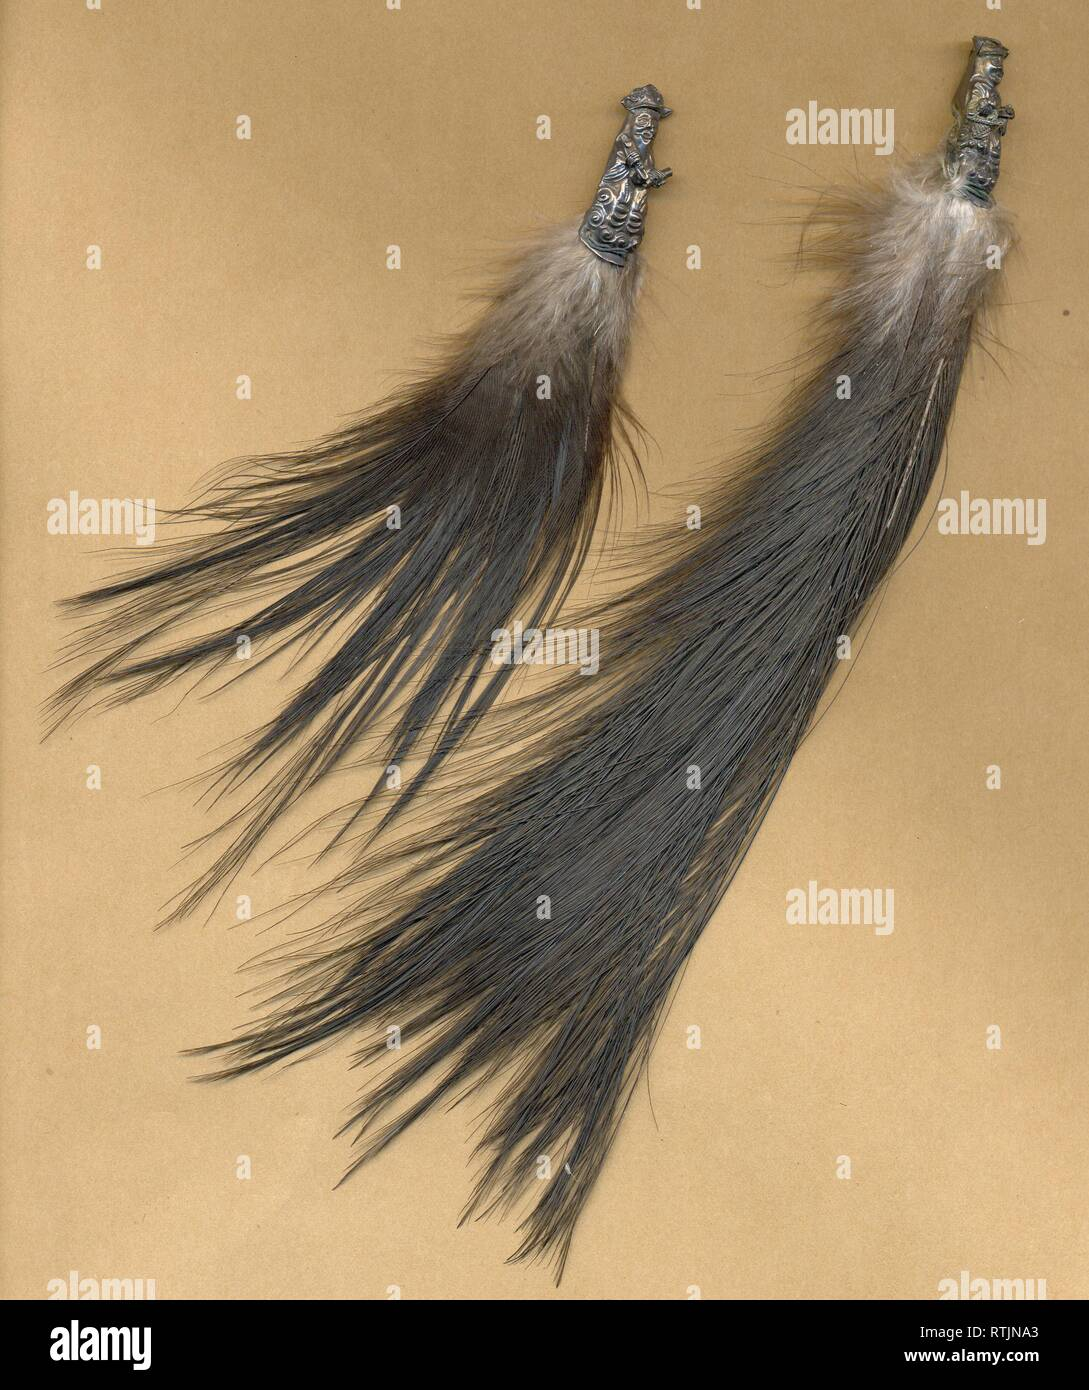 feathers from Victorian milliner's stock circa 1885 showing metal ornamental metal fix - Stock Image